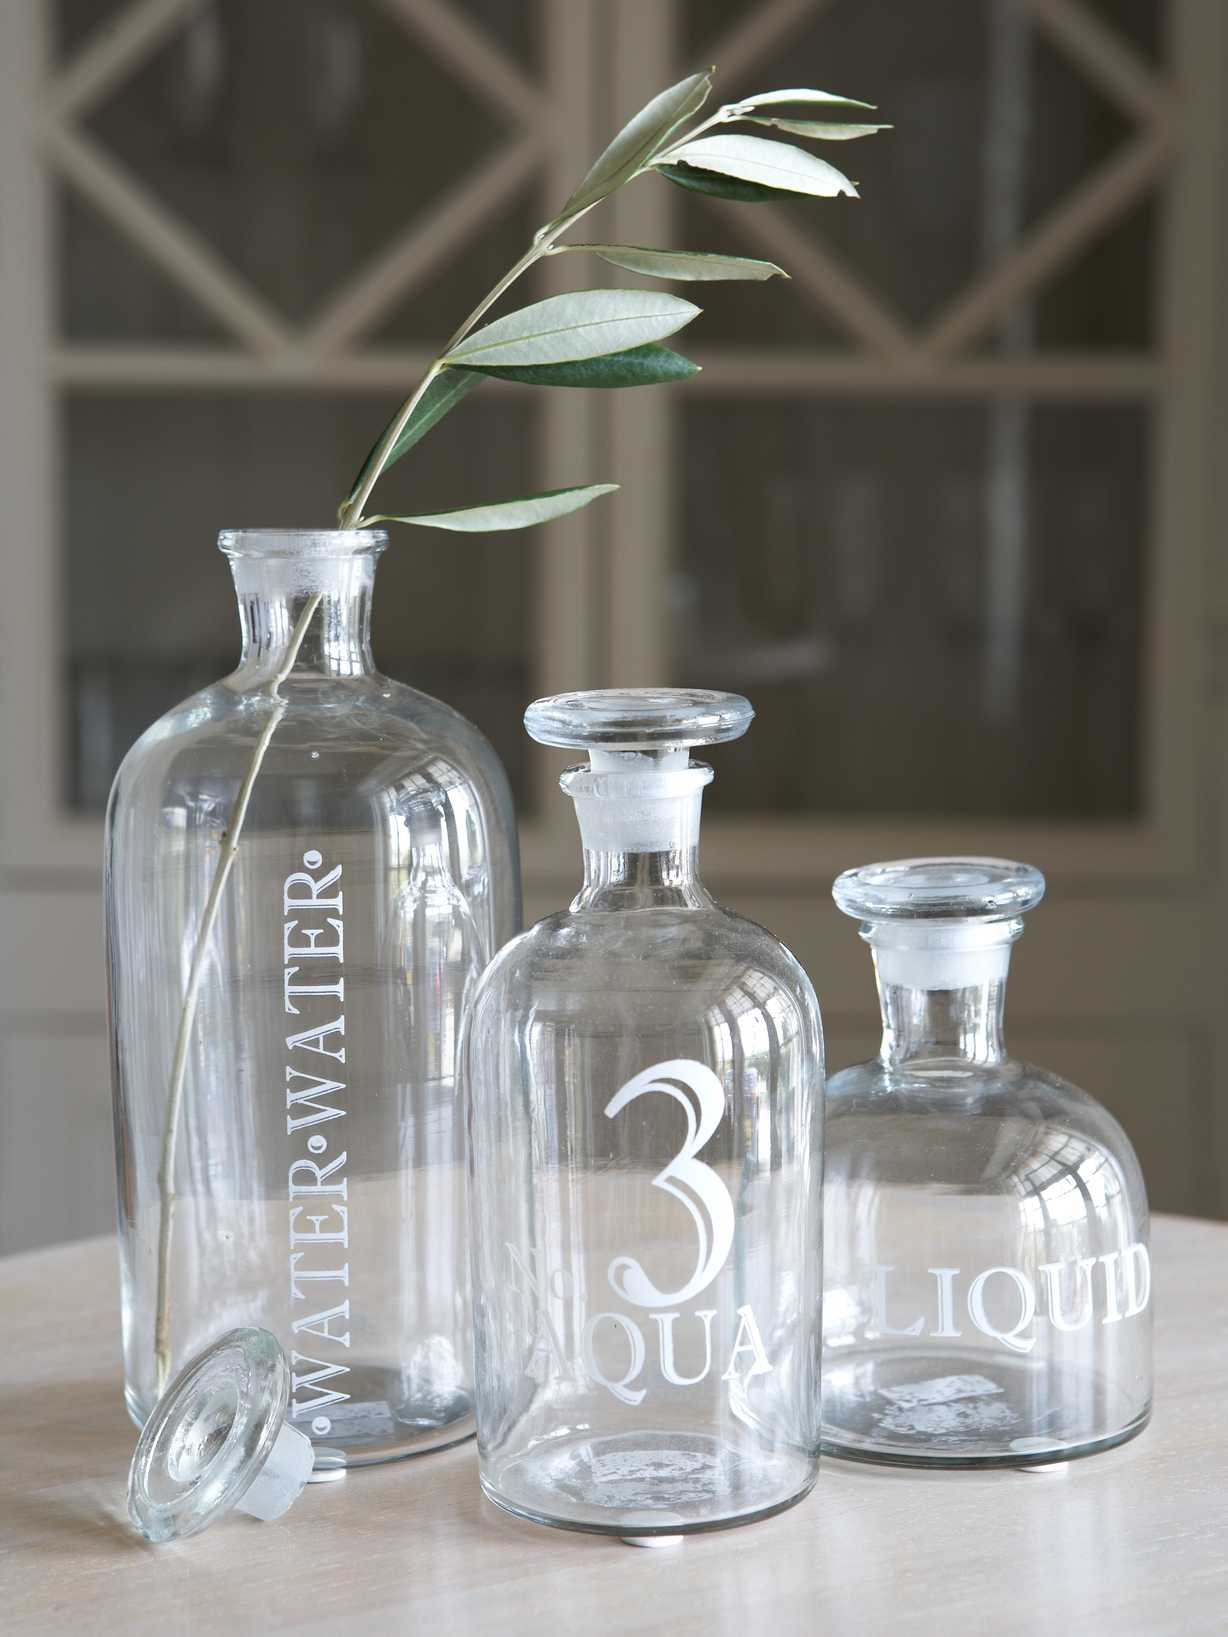 Nordic House Retro Glass Display Bottles - White Print